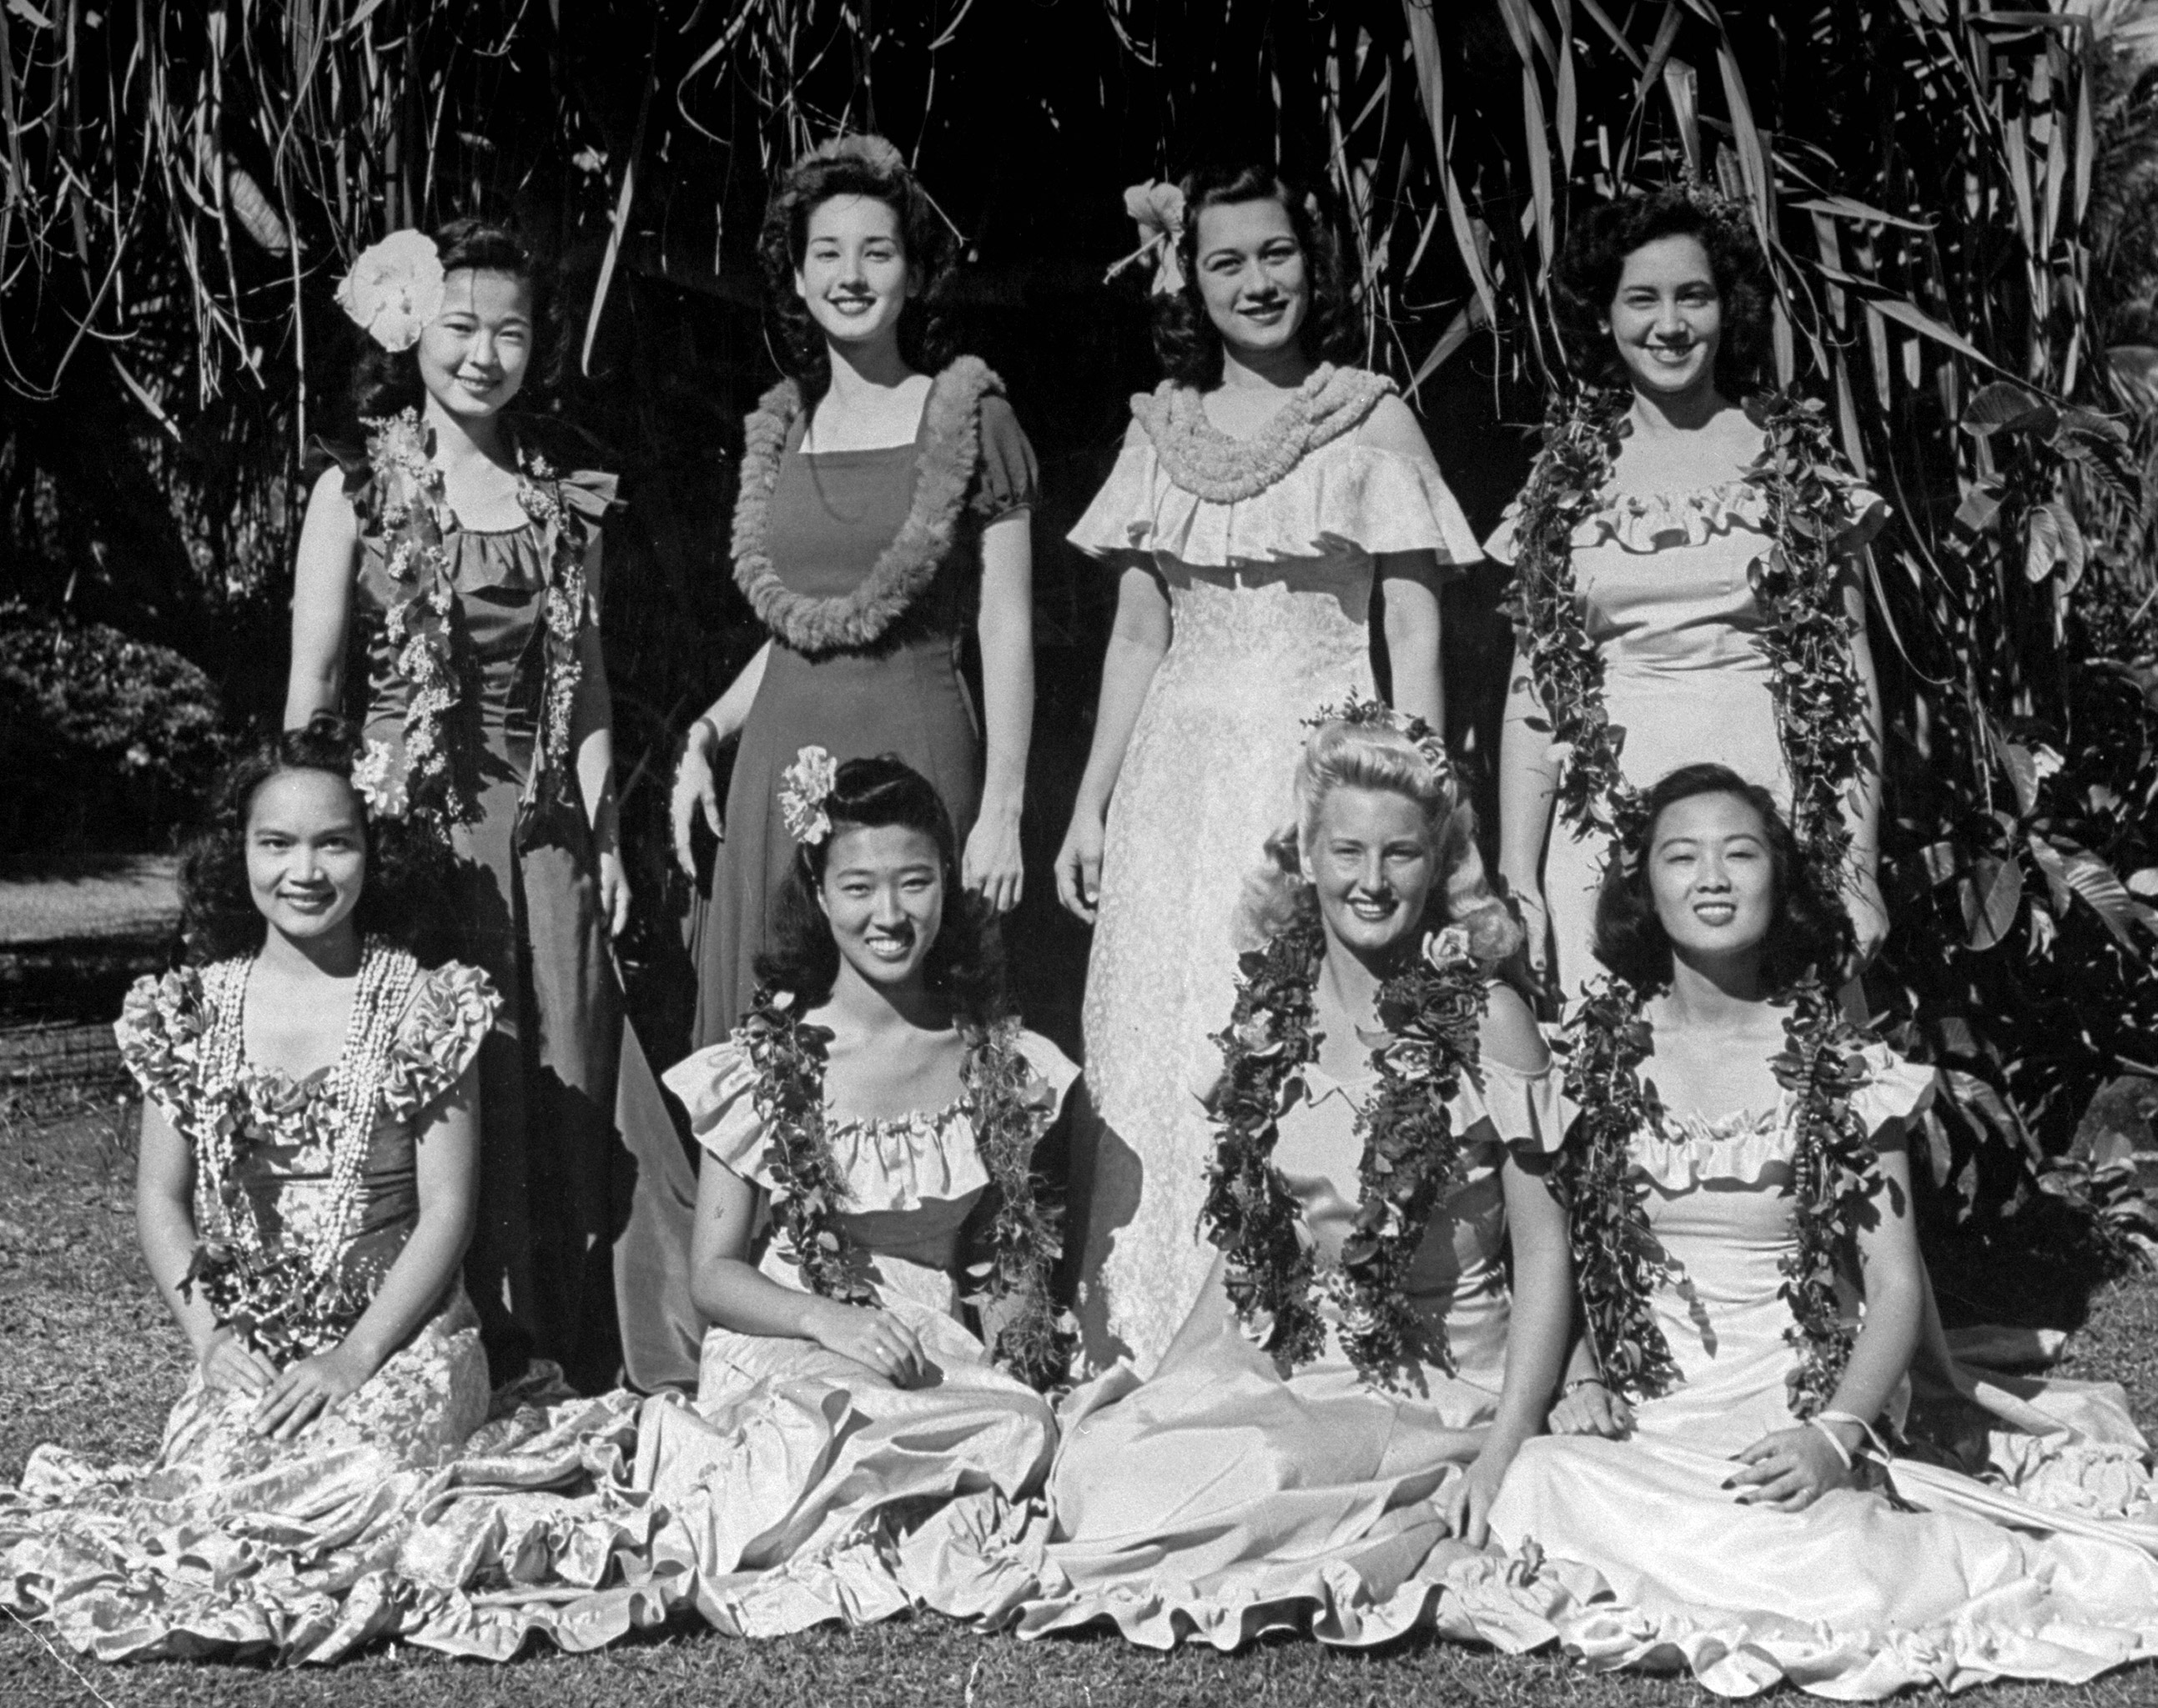 Eight University of Hawaii students are chosen by the student body to serve as Princesses and Queen in the annual May Day ceremony held at the University.